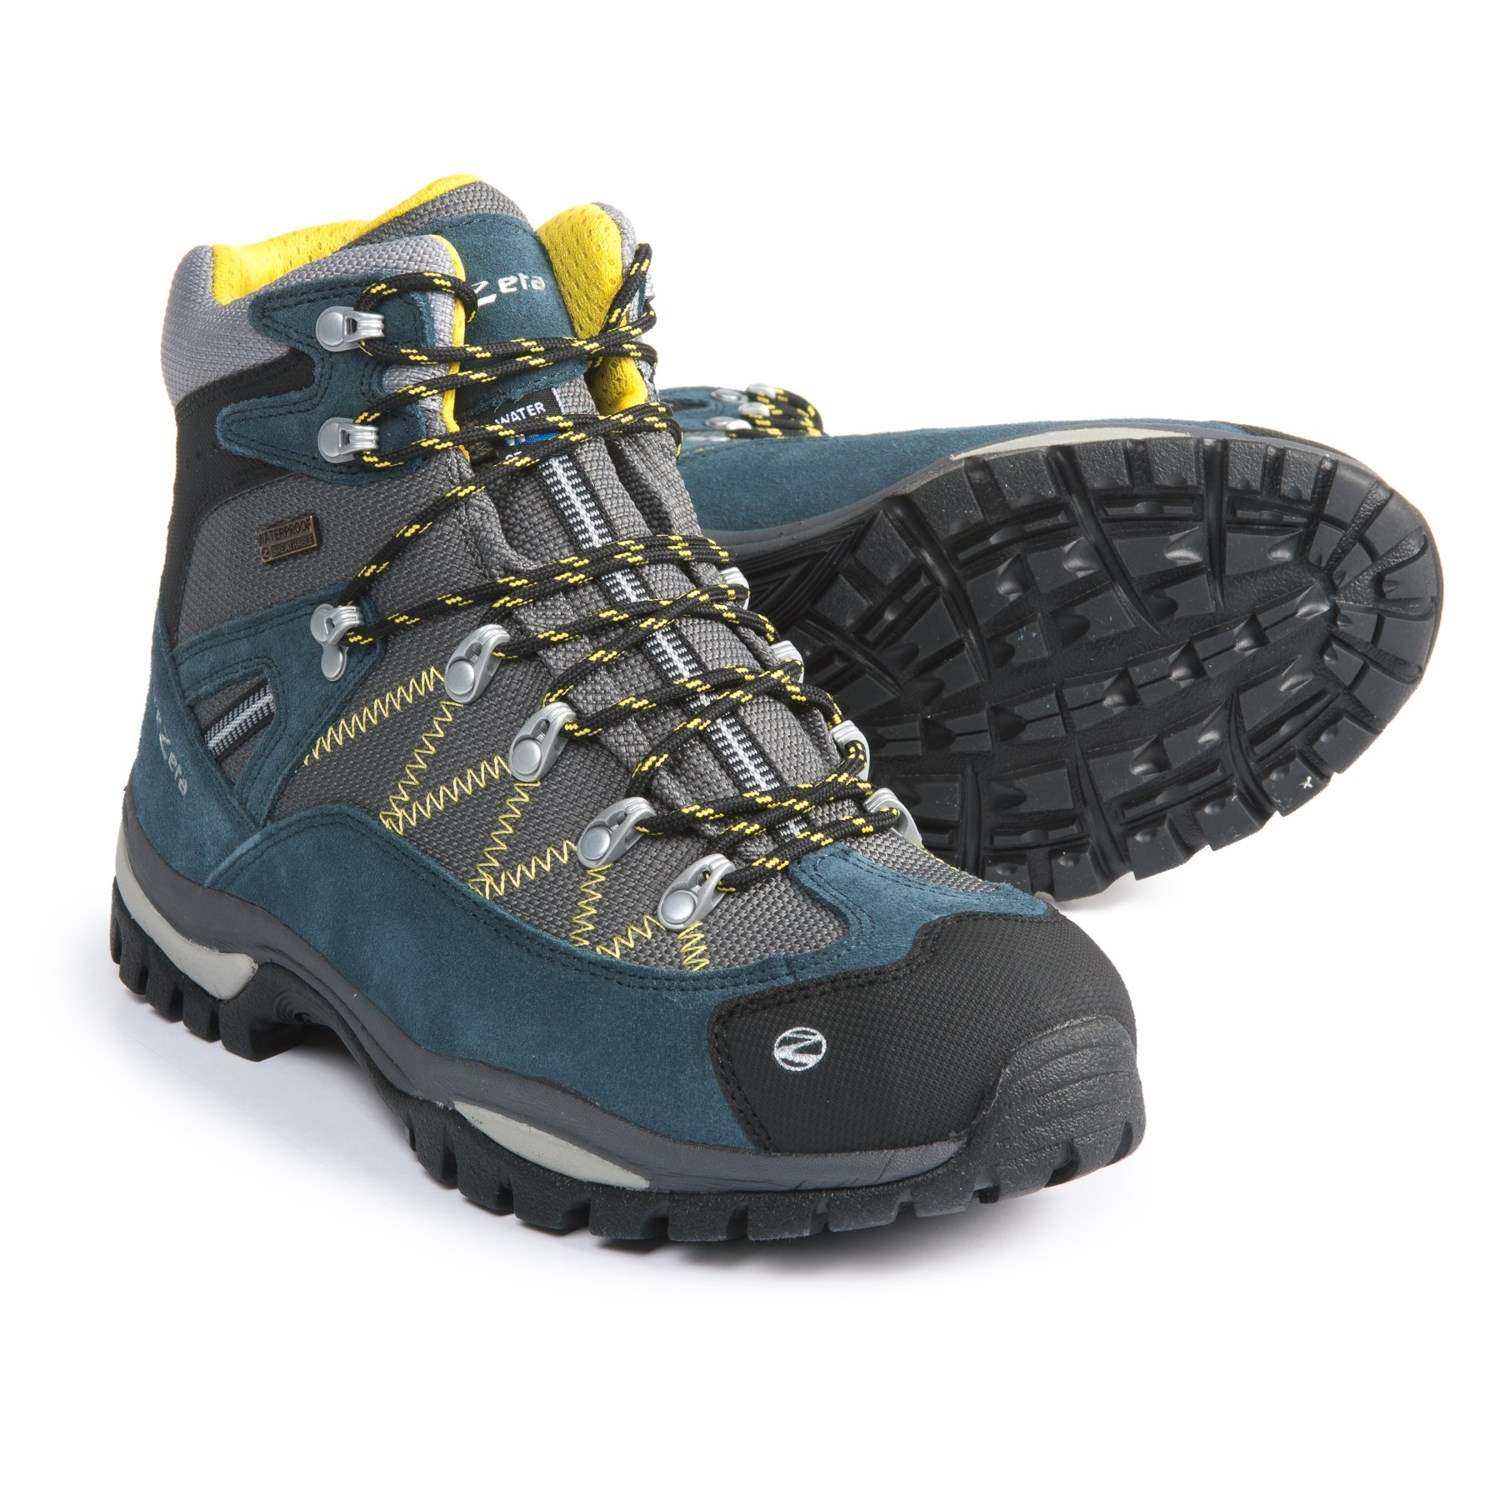 Men's Textile + Synthetic Mid Hiking Boots